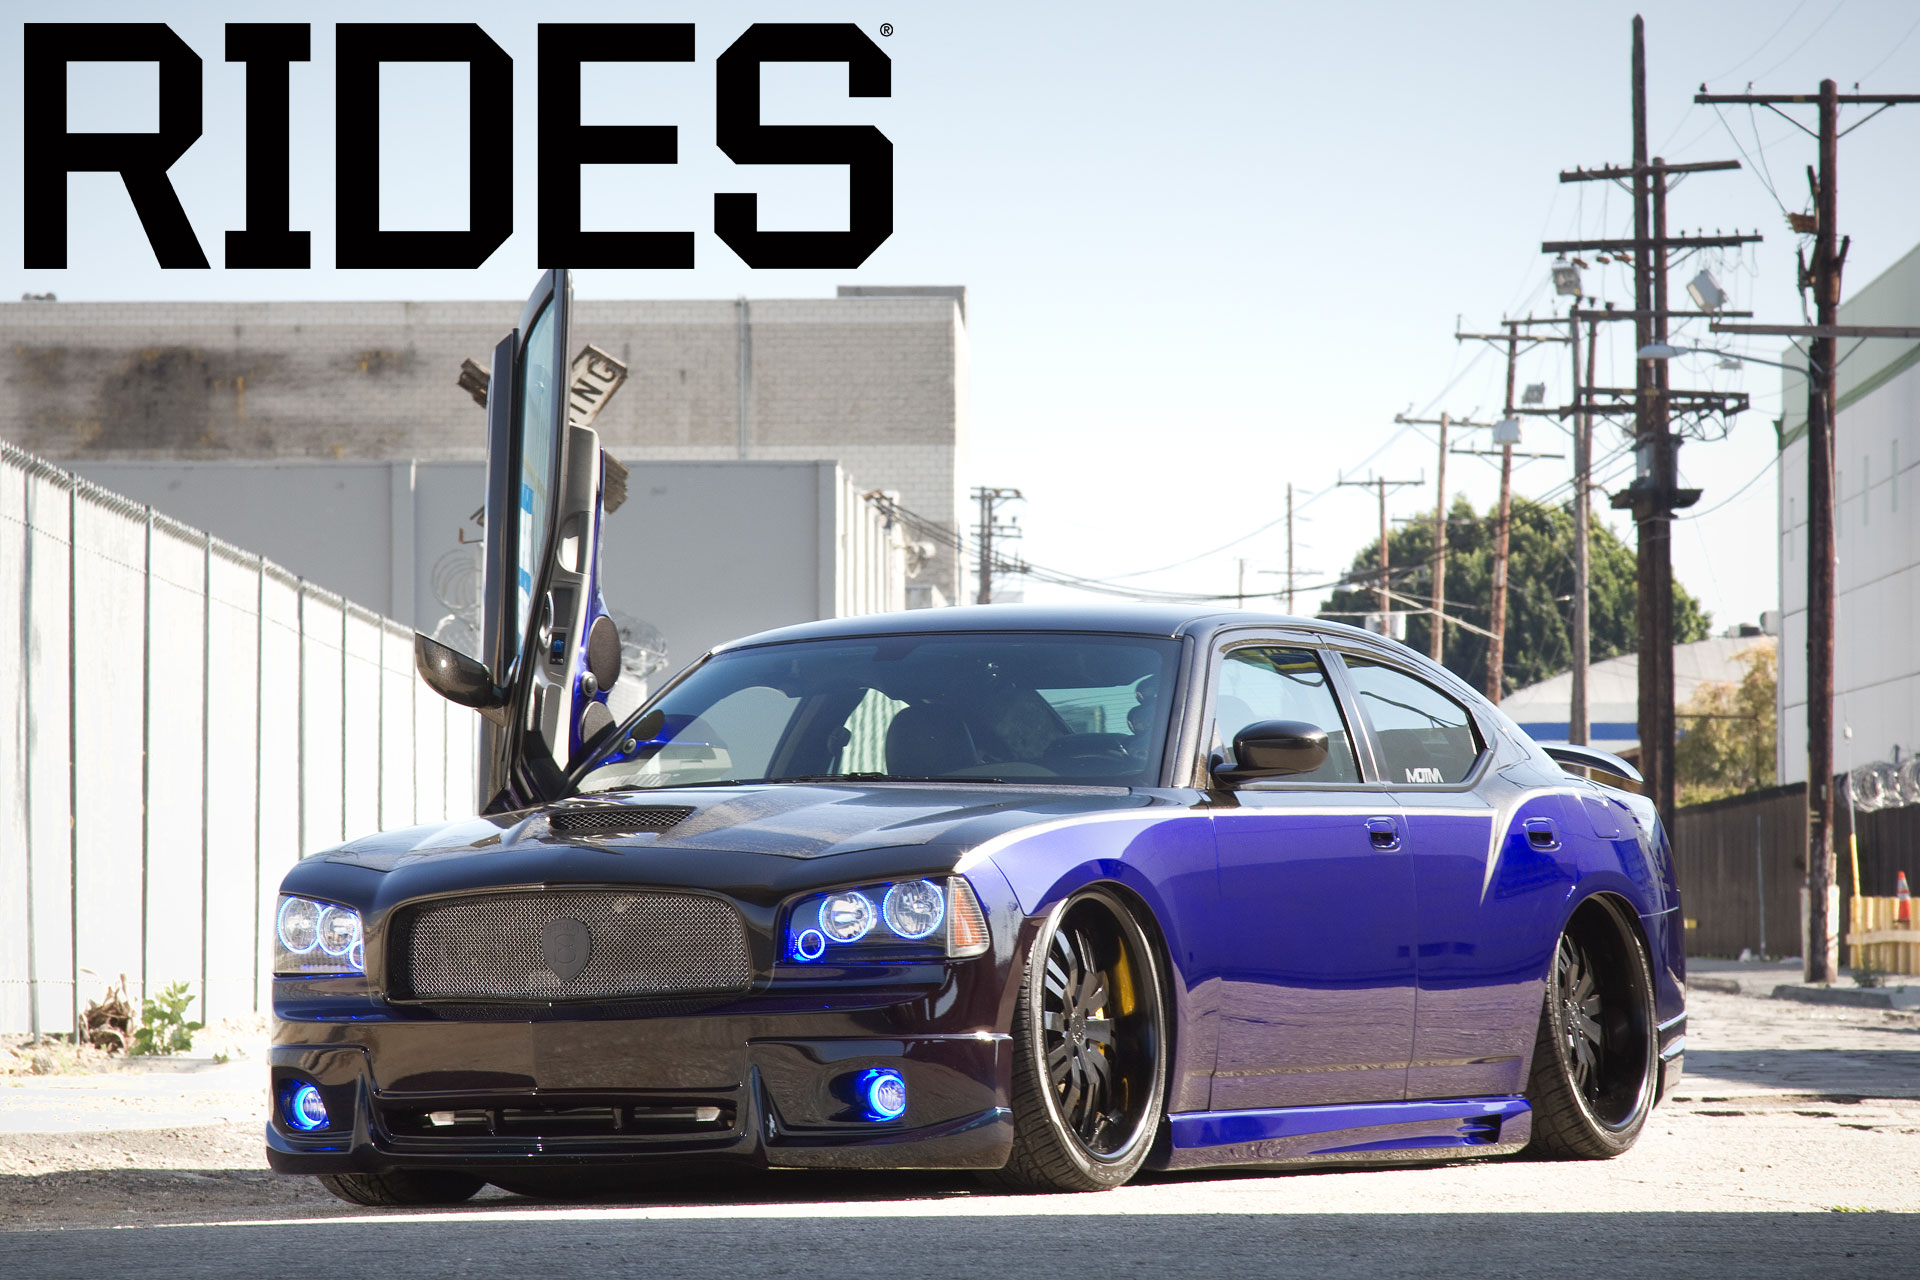 rides cars dodge charger wallpaper june 2011 kenneth wheeler